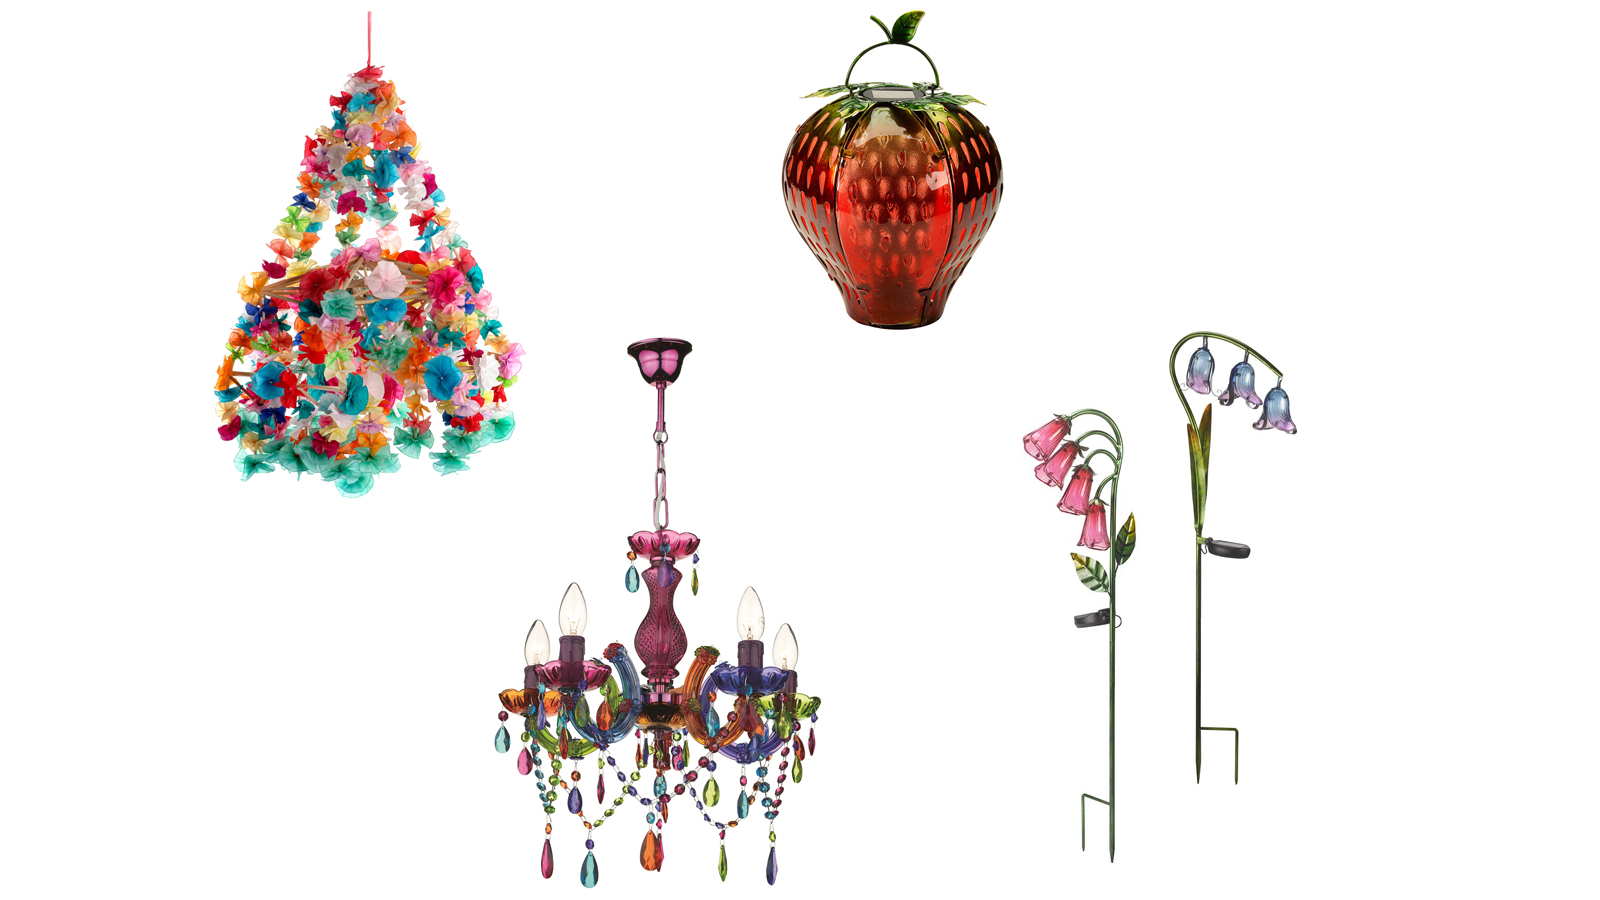 (Clockwise from left) Four lights for festival decor: Pajaki paper chandelier; Solar funky fruit strawberry lantern; Solar iris stake lights, fuschia; chandelier (PA)